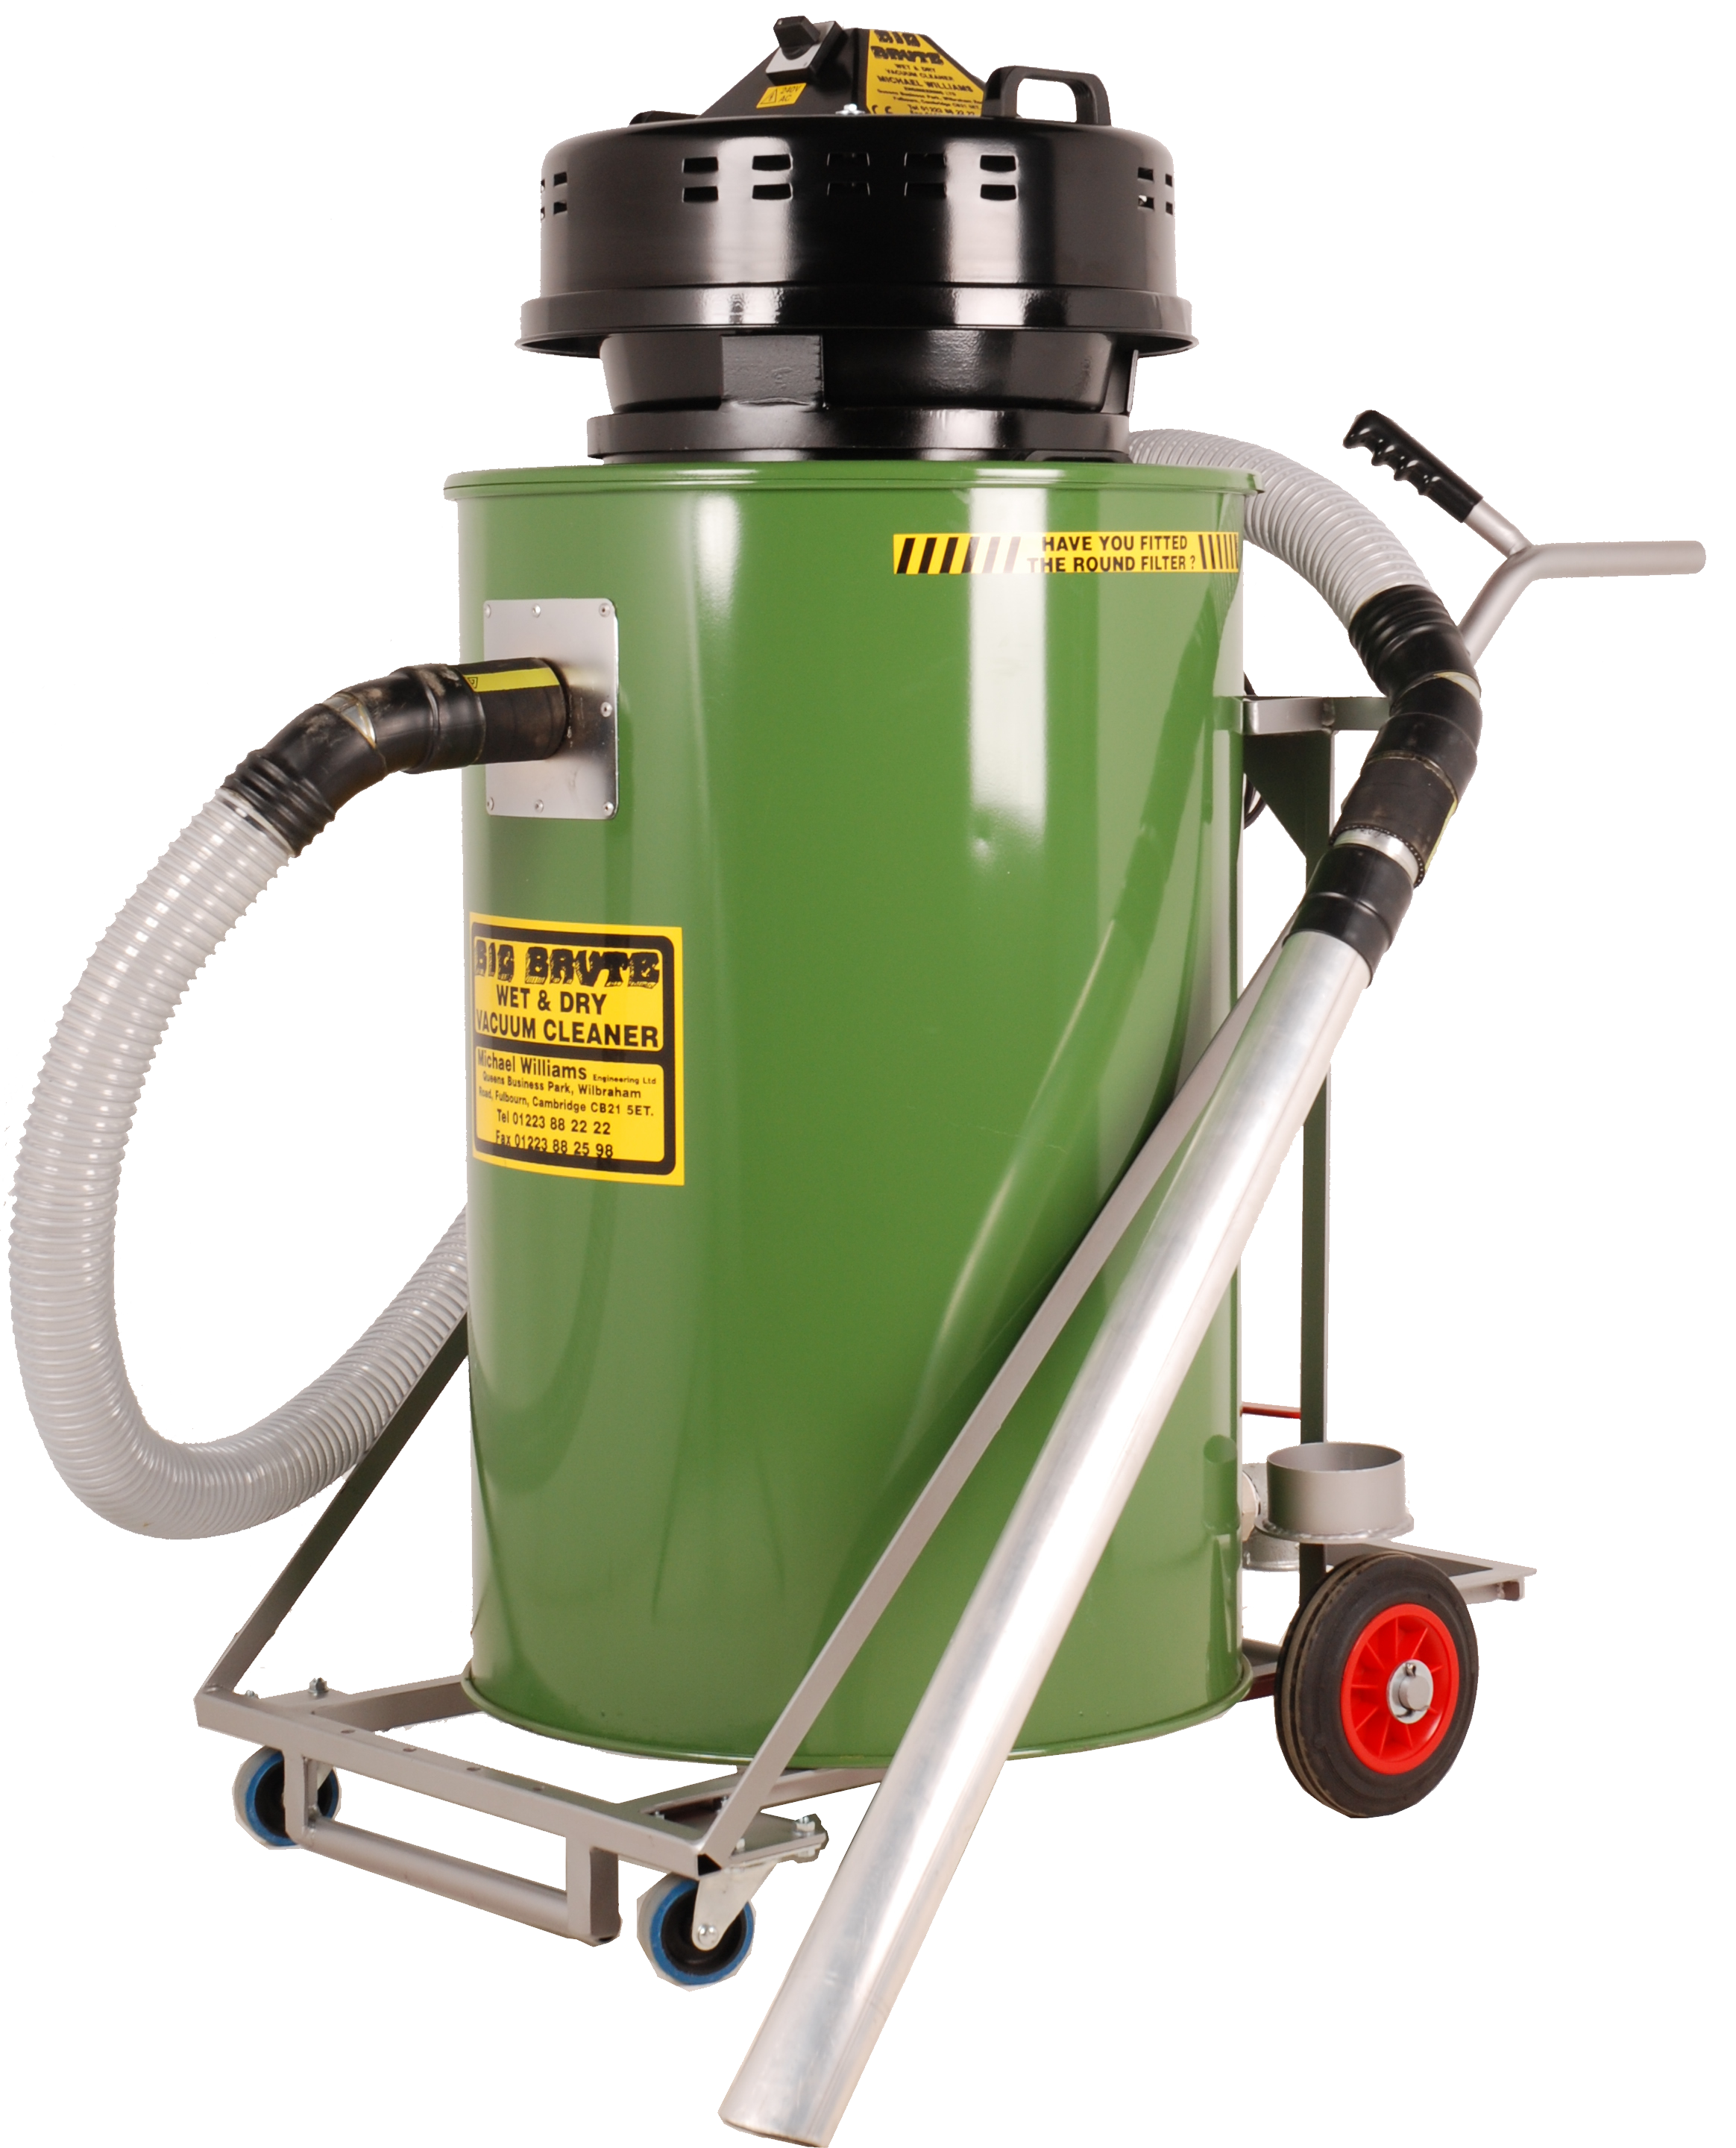 Big Brute Wet & Dry Industrial Vacuum Cleaner